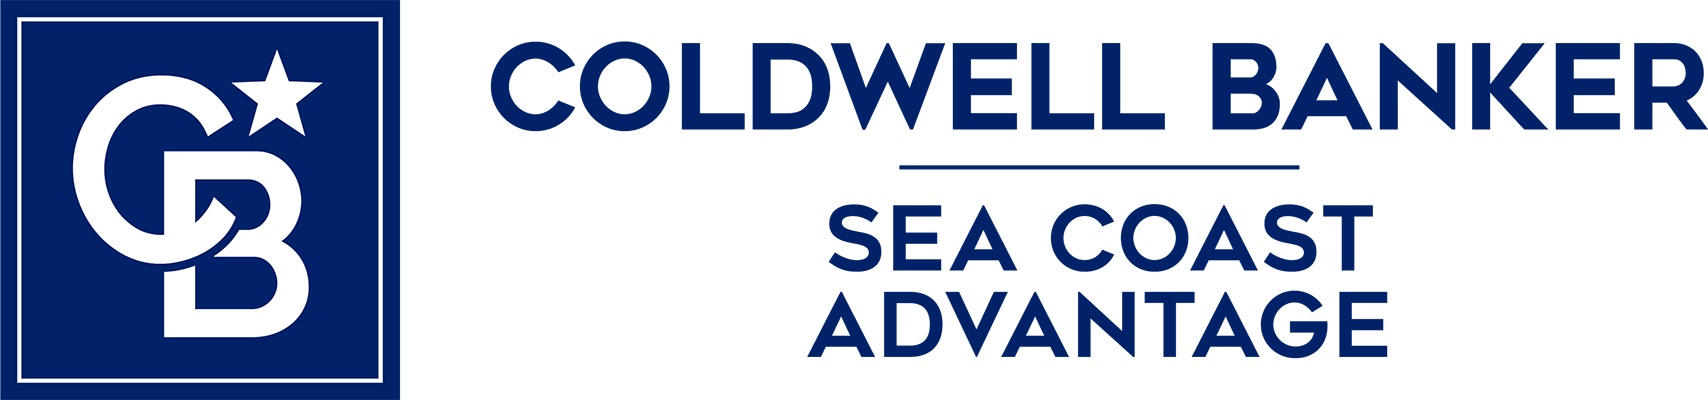 Patricia Wisdo - Coldwell Banker Sea Coast Advantage Realty